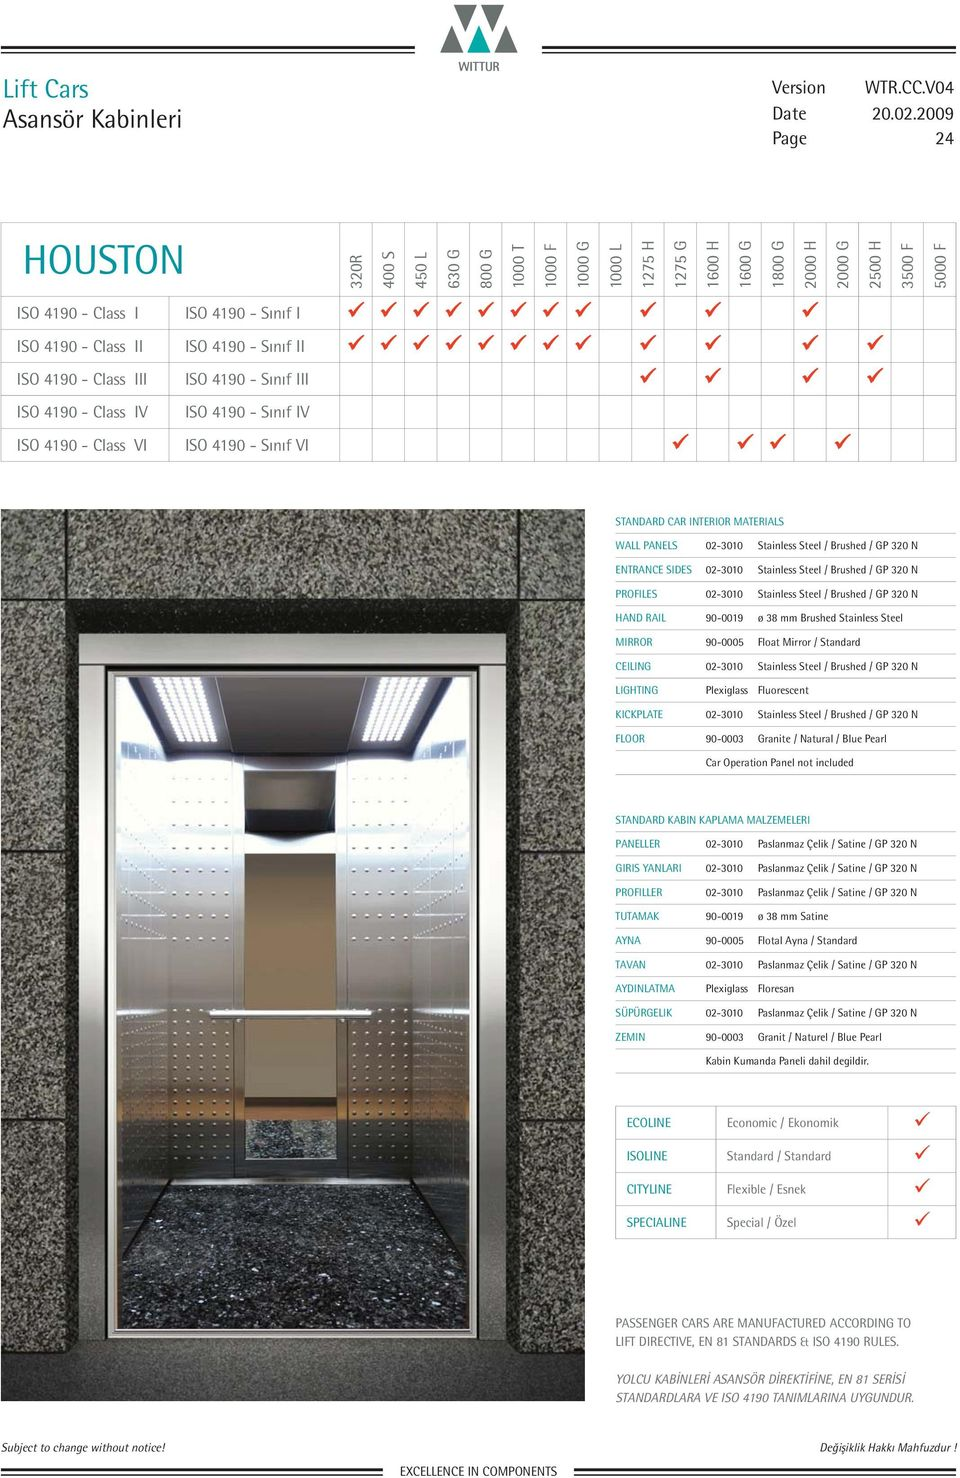 PANELS 02-3010 Stainless Steel / Brushed / GP 320 N FLOOR 90-0003 Granite / Natural / Blue